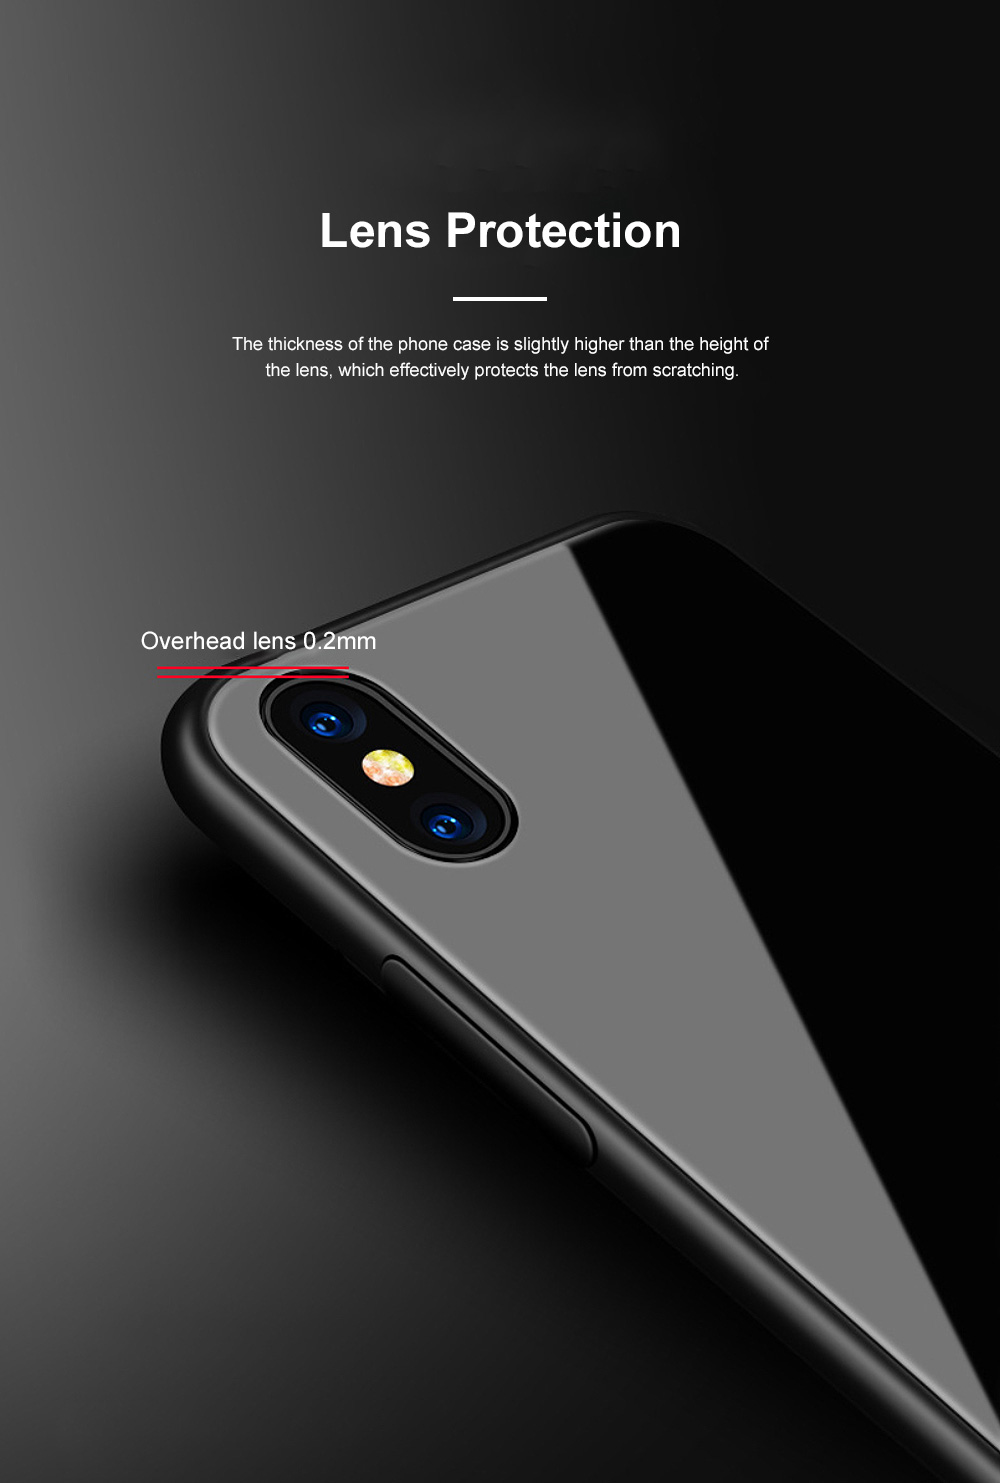 Minimalist Delicate Firmed Magnetic Catche Glass Samsung Phone Case Shock-proof Aluminum Alloy Phone Protective Cover For Samsung note 9, Samsung S9, Samsung s9 plus 5